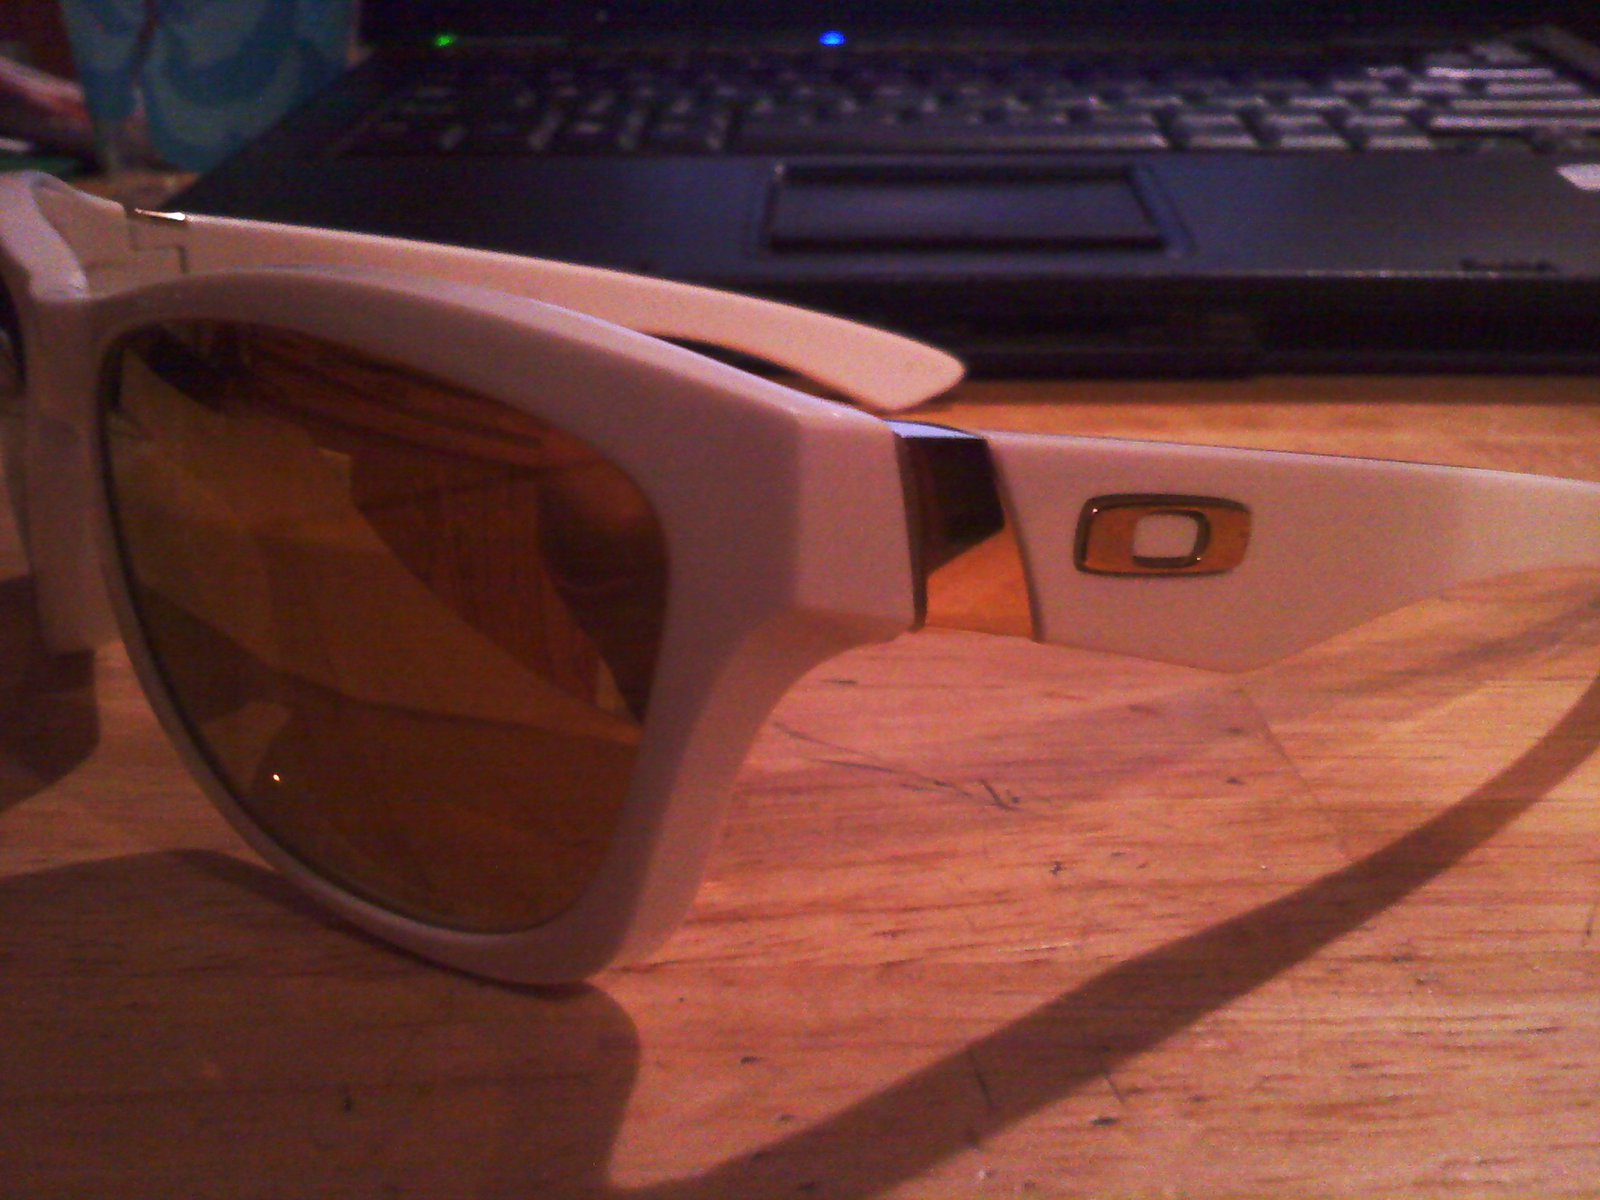 oakley jupiters (mirror lens)